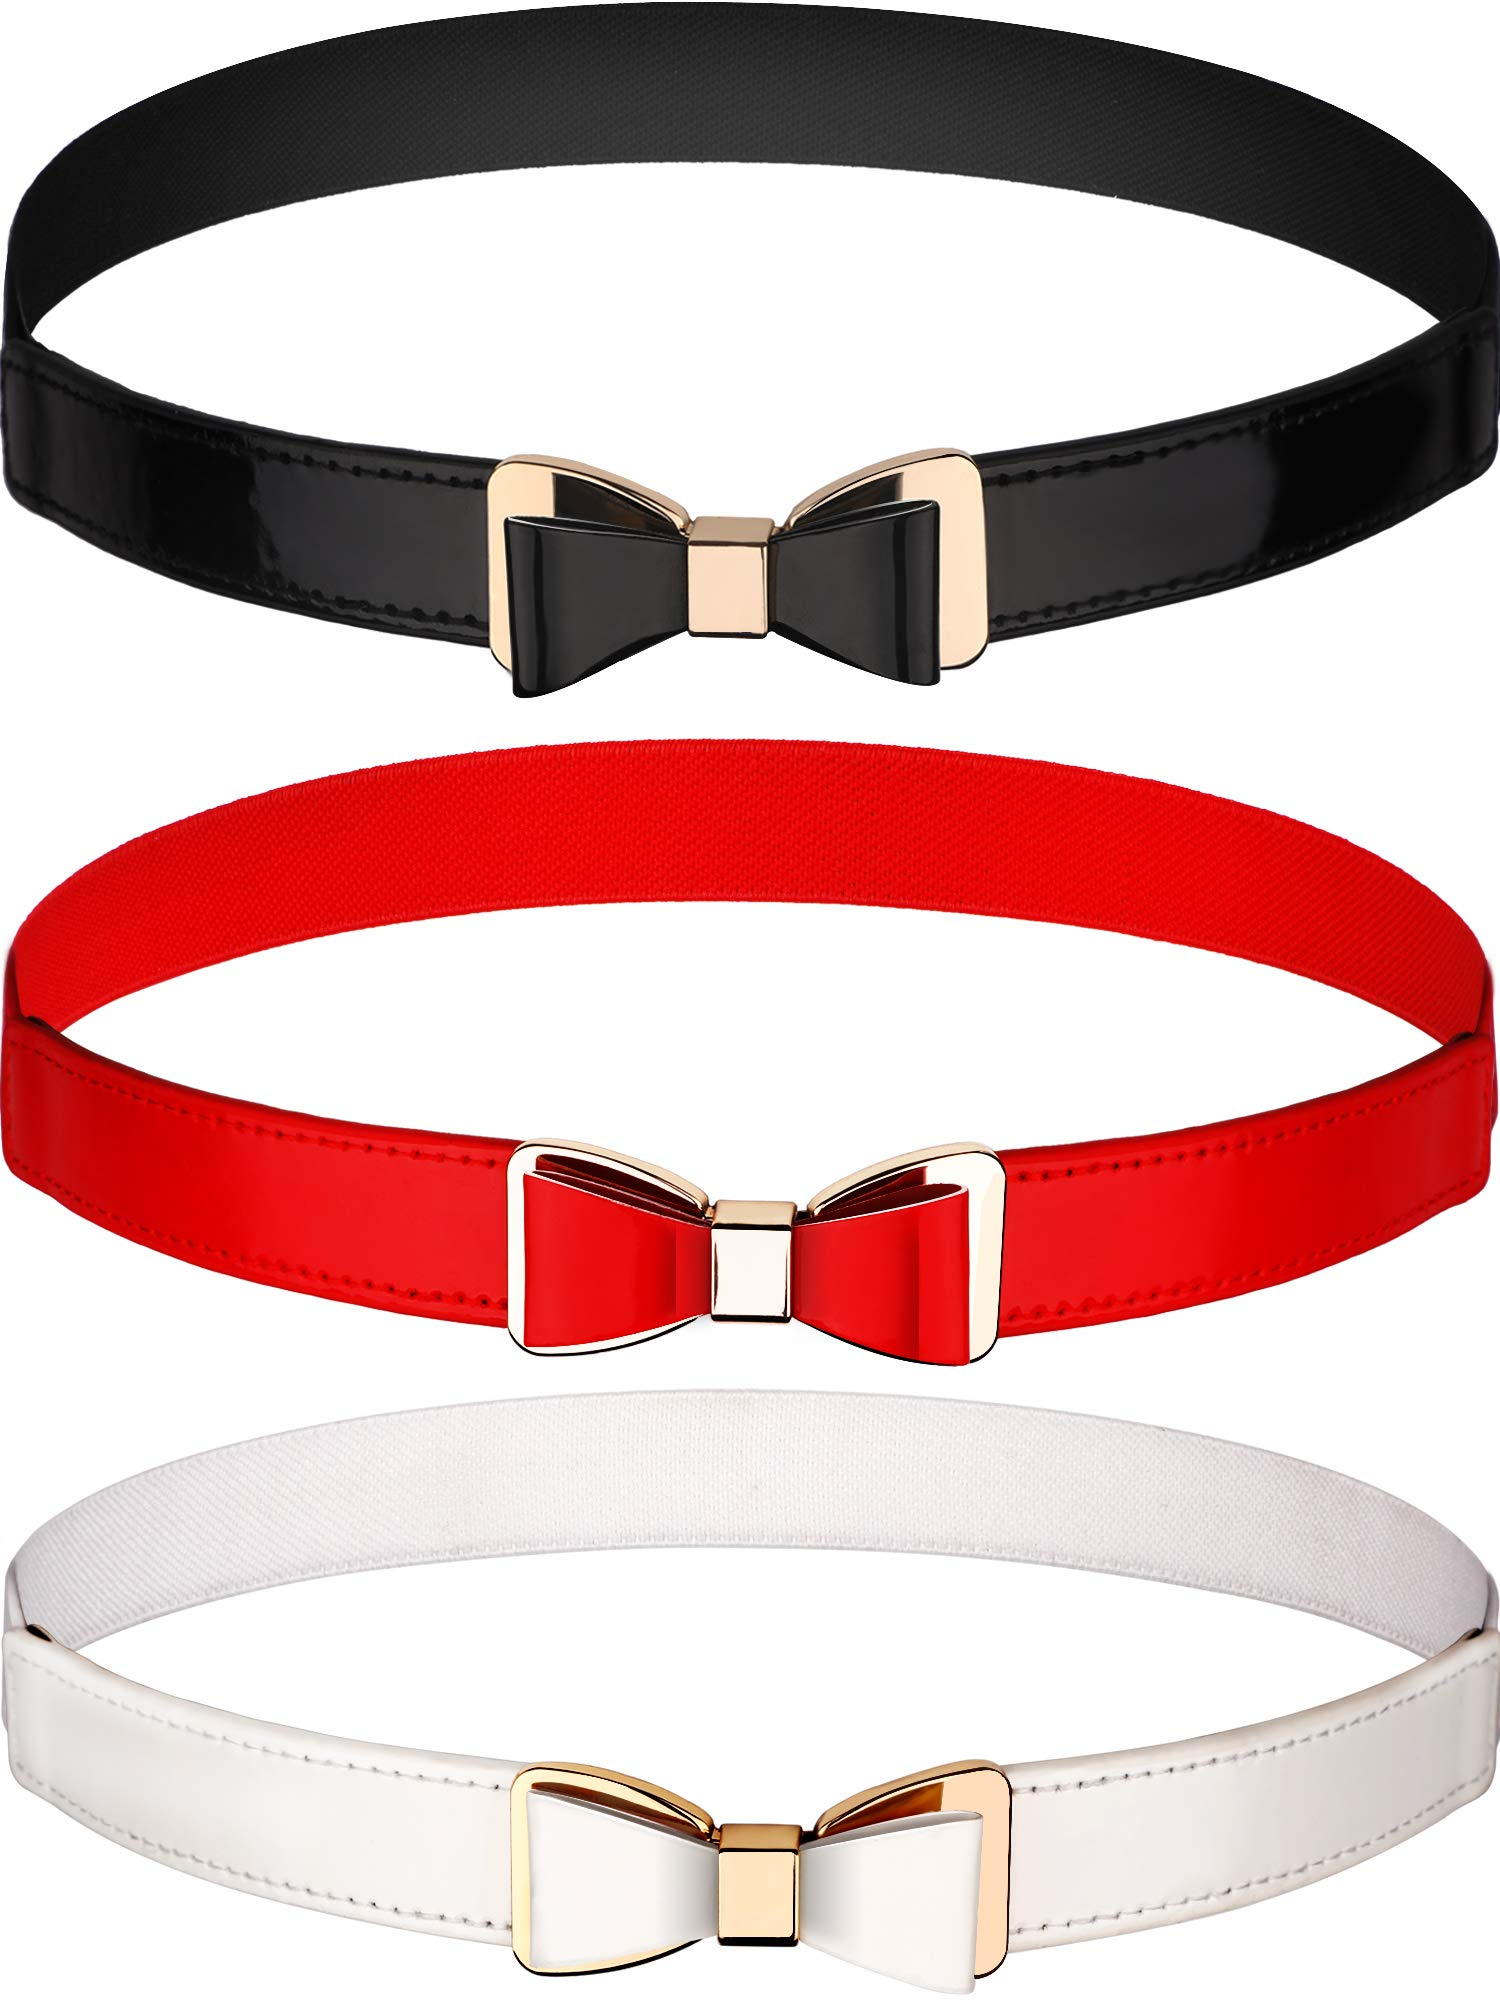 Tatuo 3 Pieces Women Skinny Waist Belt Thin Stretchy Bow Belt for Dress, 3 Colors (Set 1) (Red, Black and White)